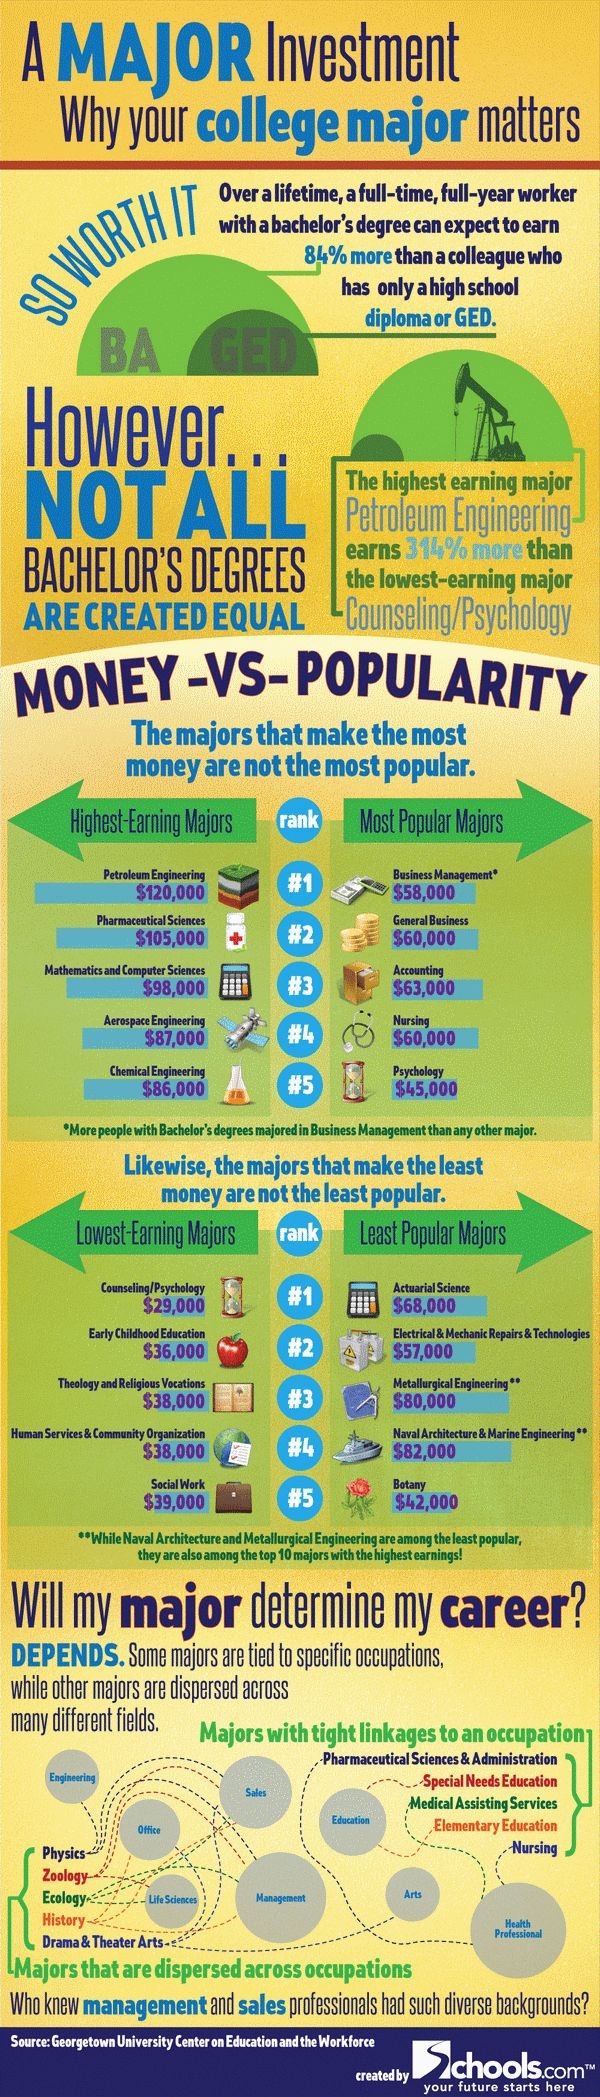 best images about choosing a college major what s the value of your degree in dollars does your major matter